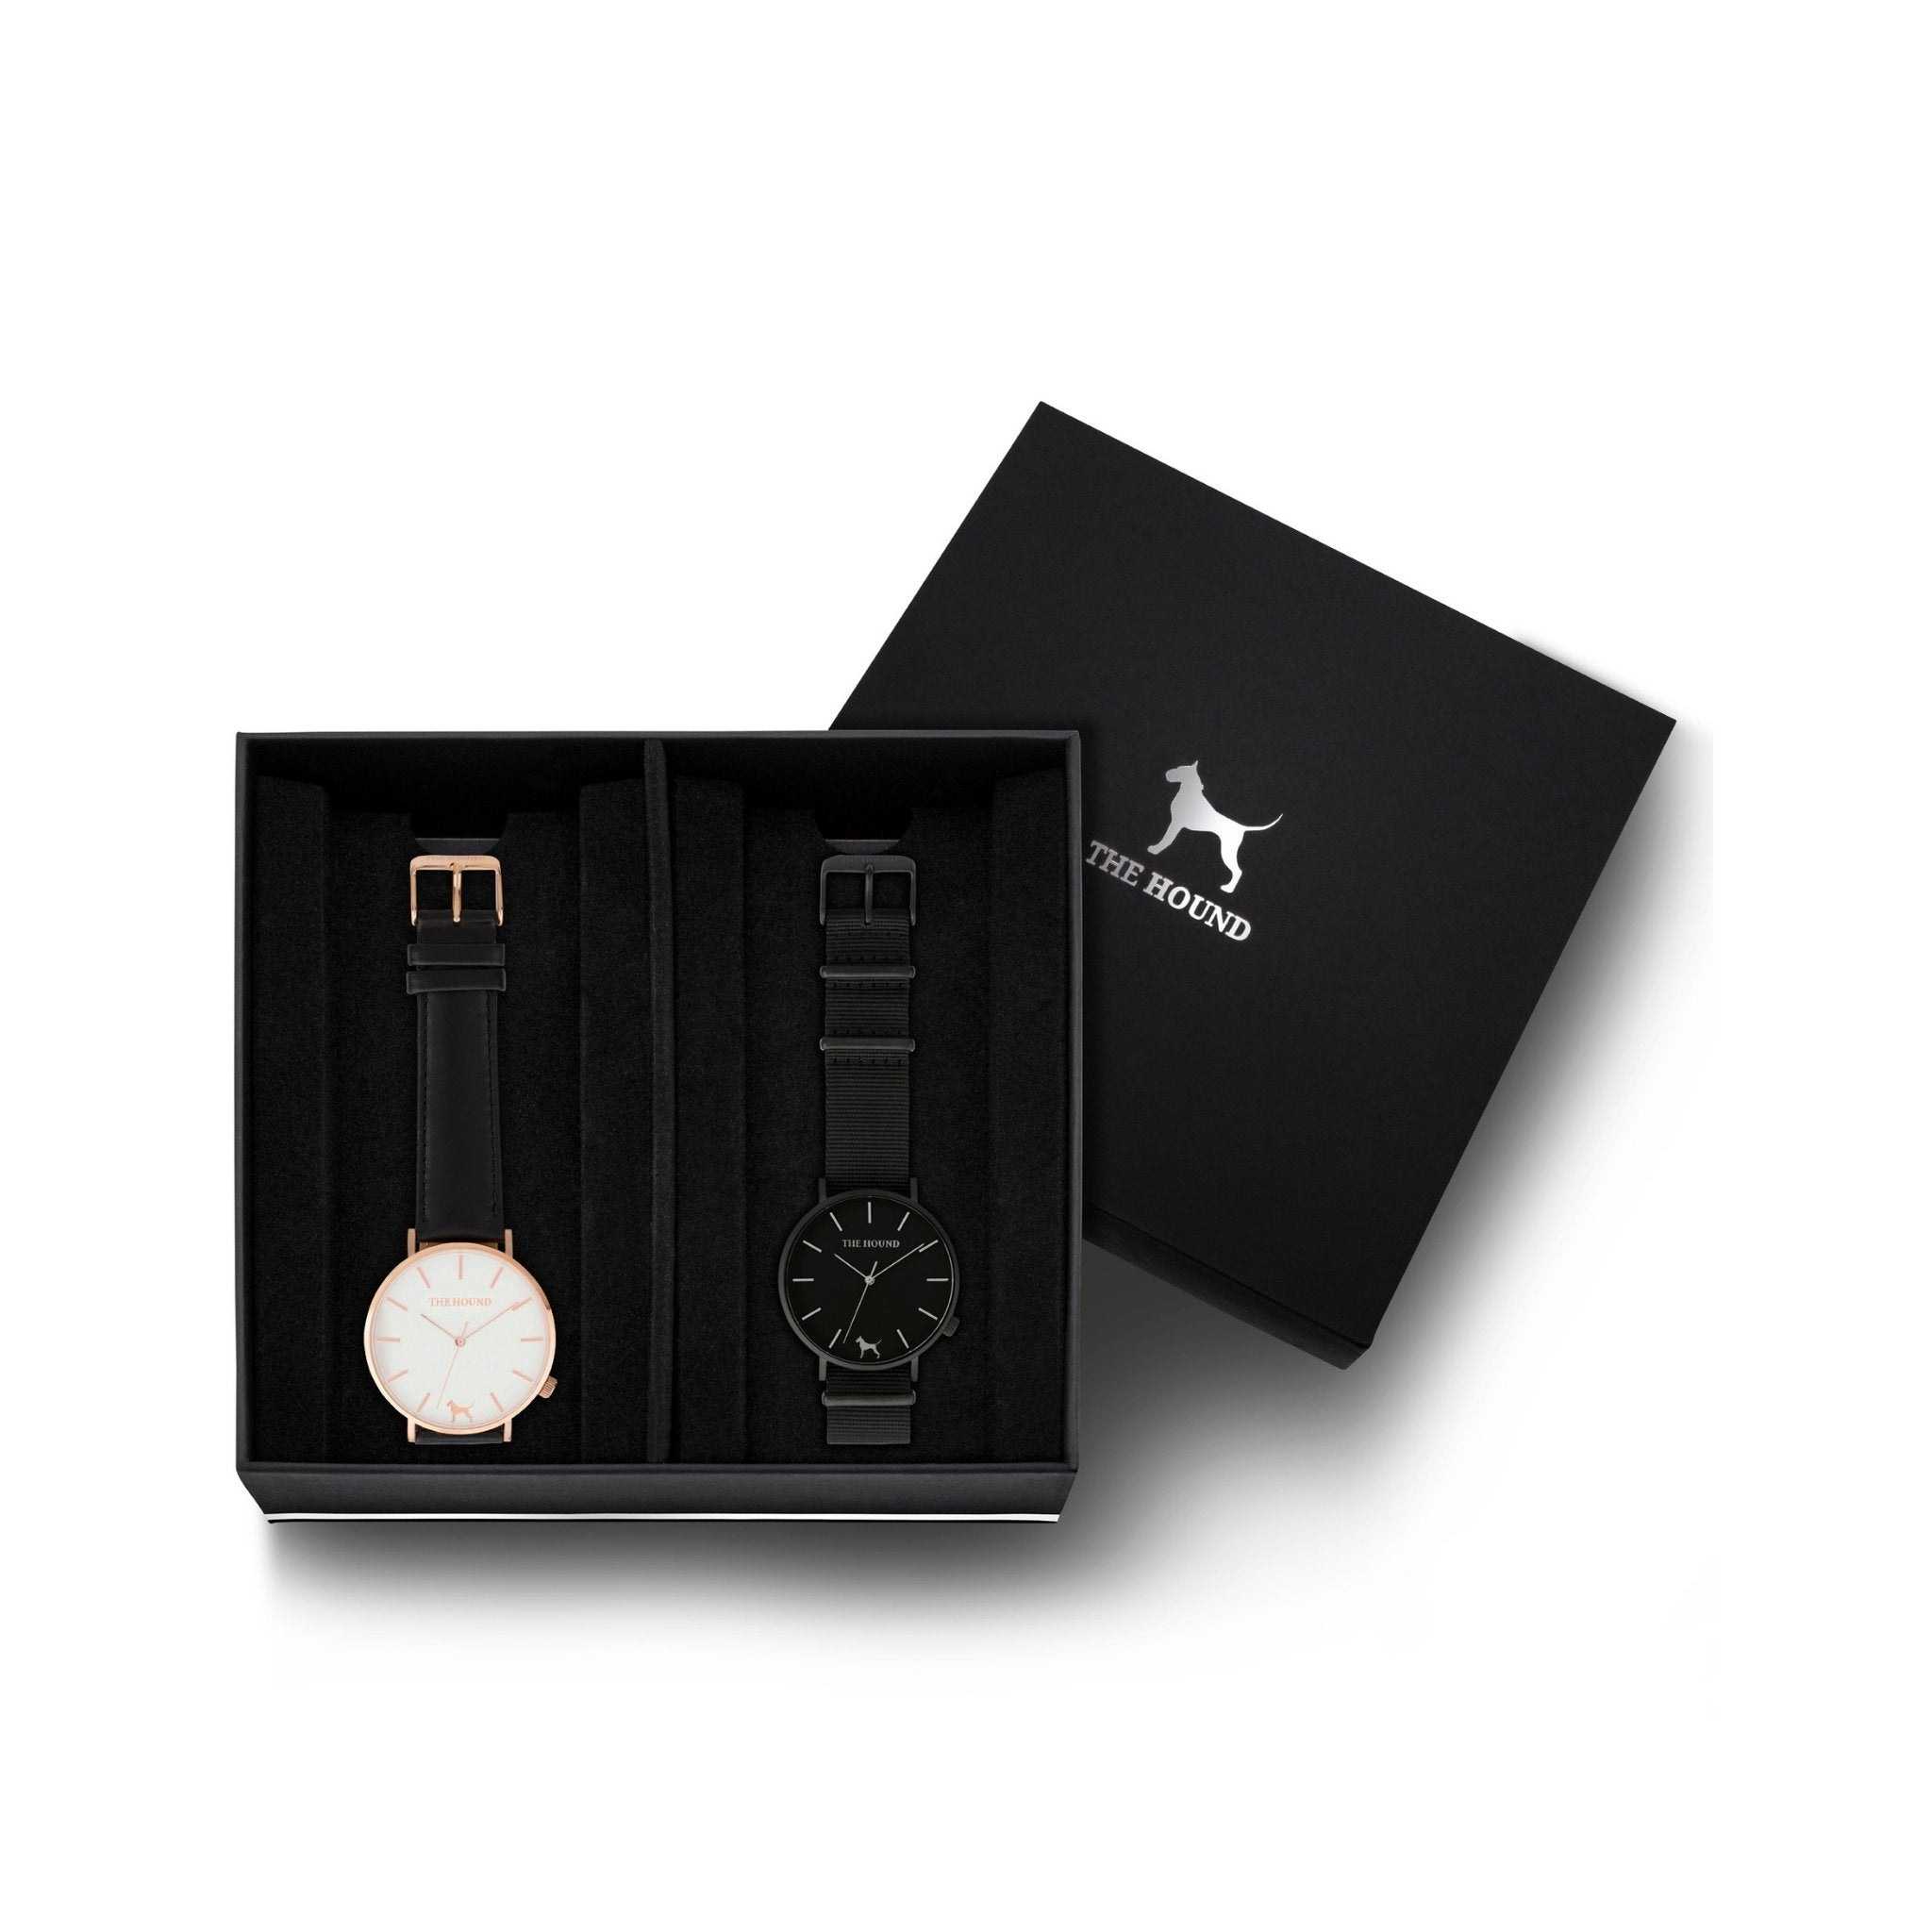 Custom gift set - Rose gold and white watch with stitched black genuine leather band and a matte black and black watch with black nato leather band